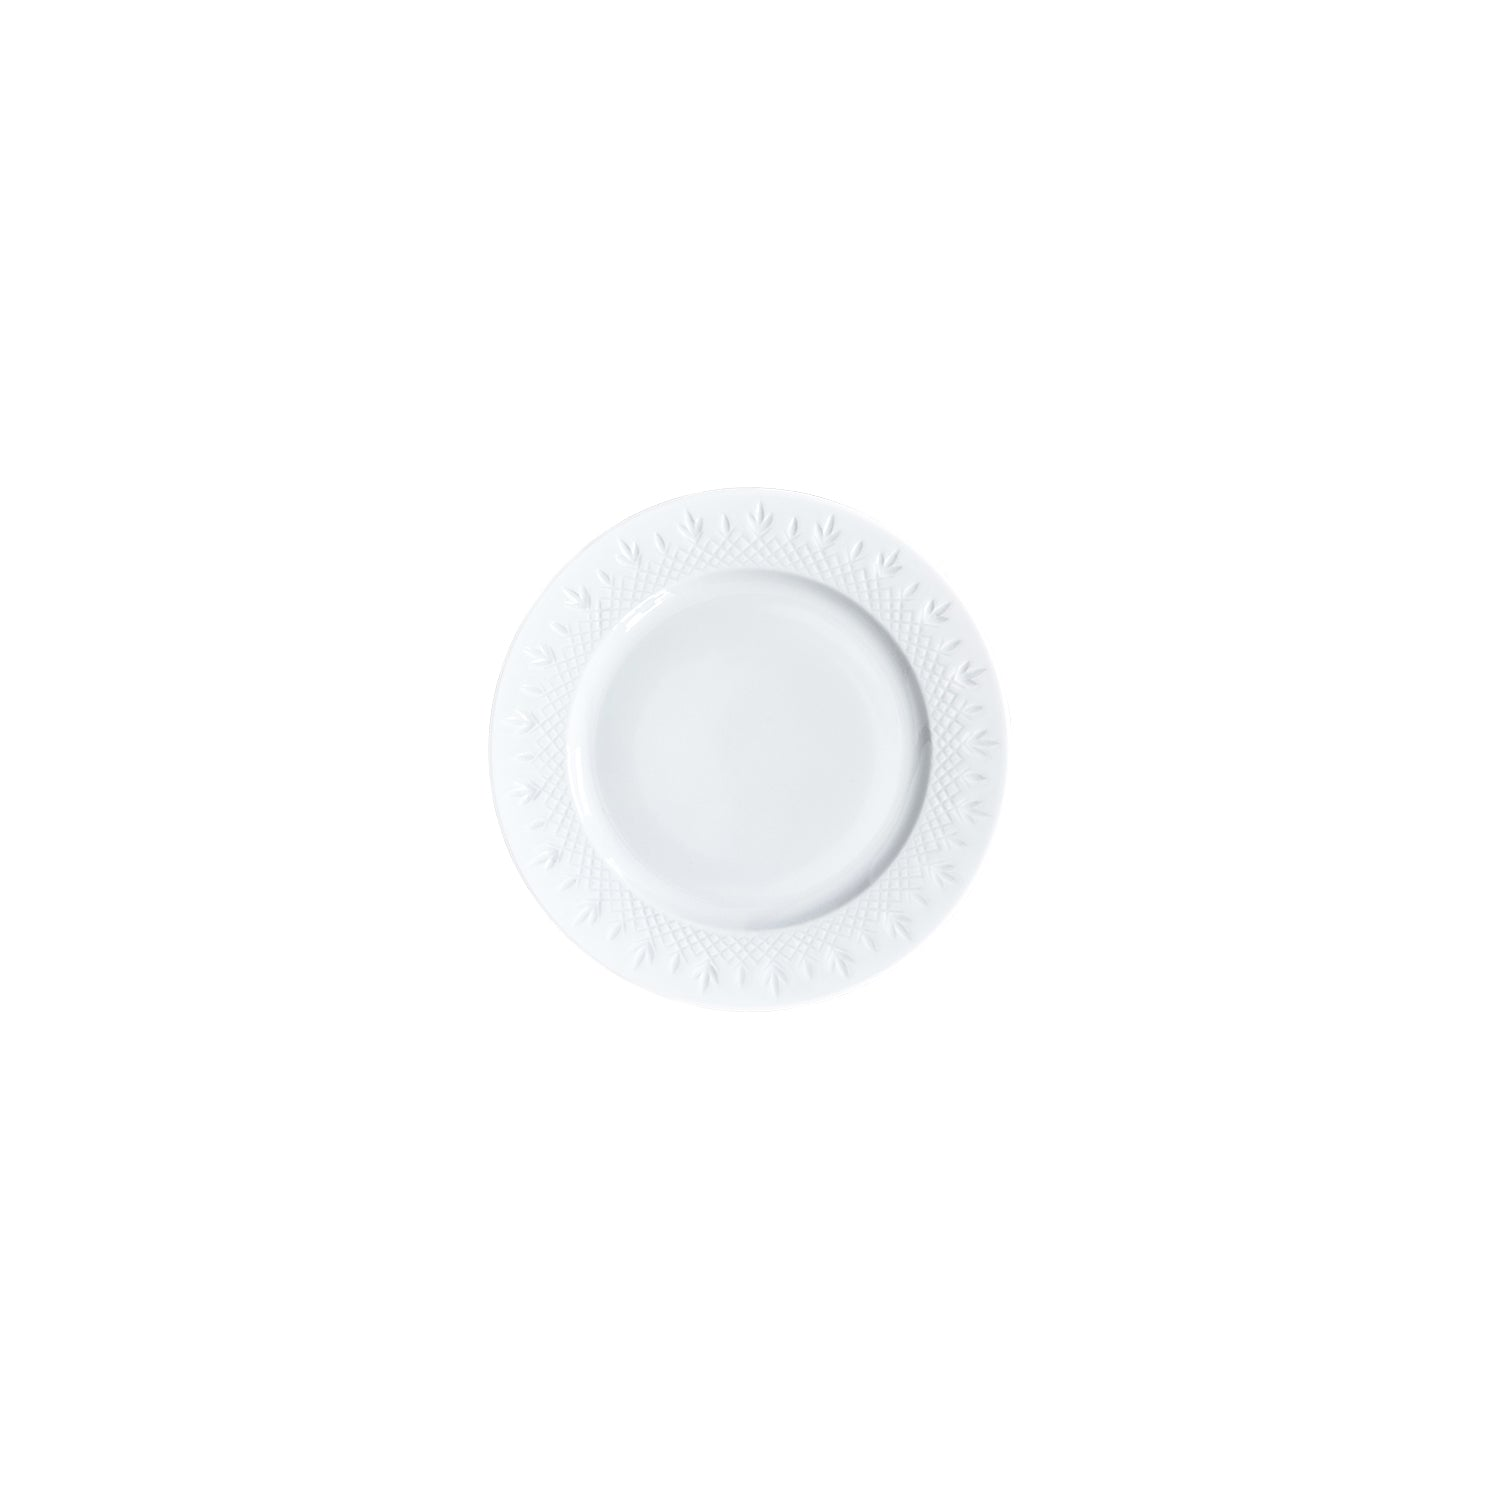 Crispy Side Plate - 1 Piece